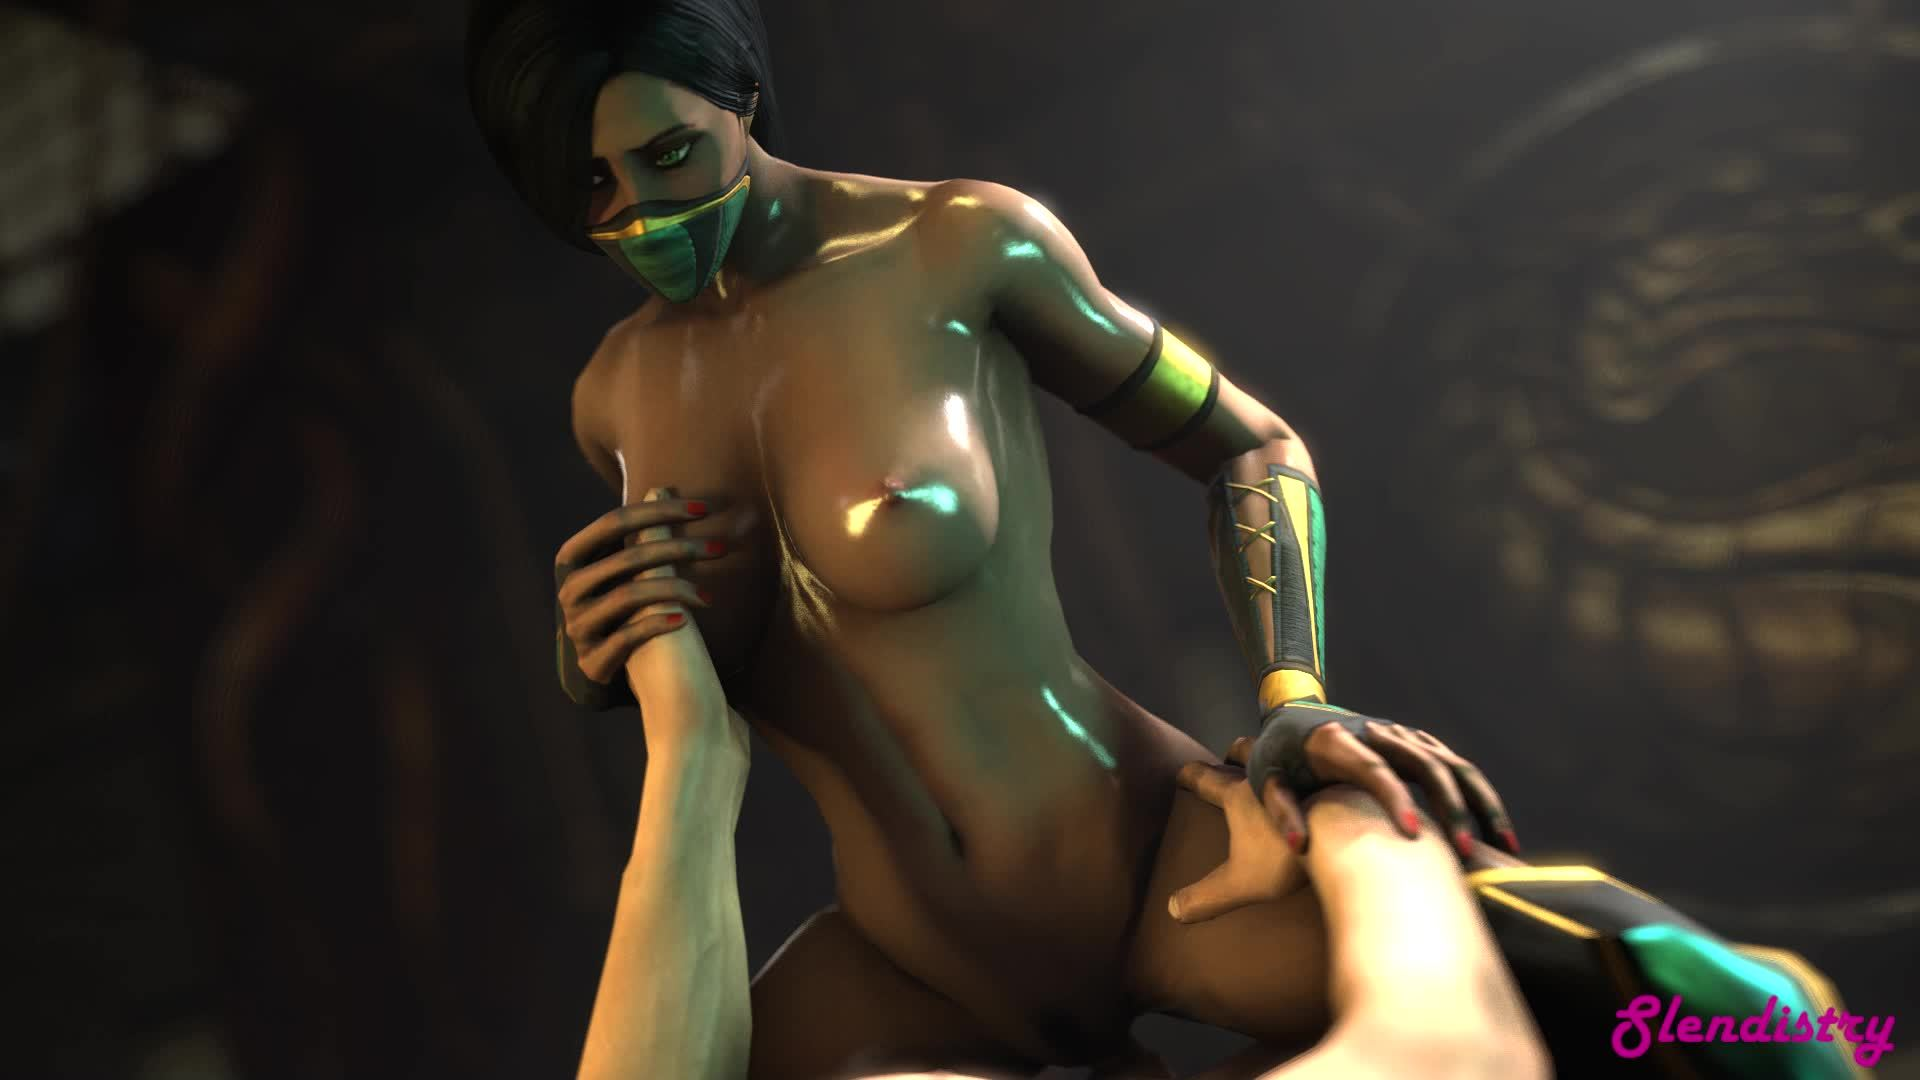 Nude patch boobs mortal kombat porno picture